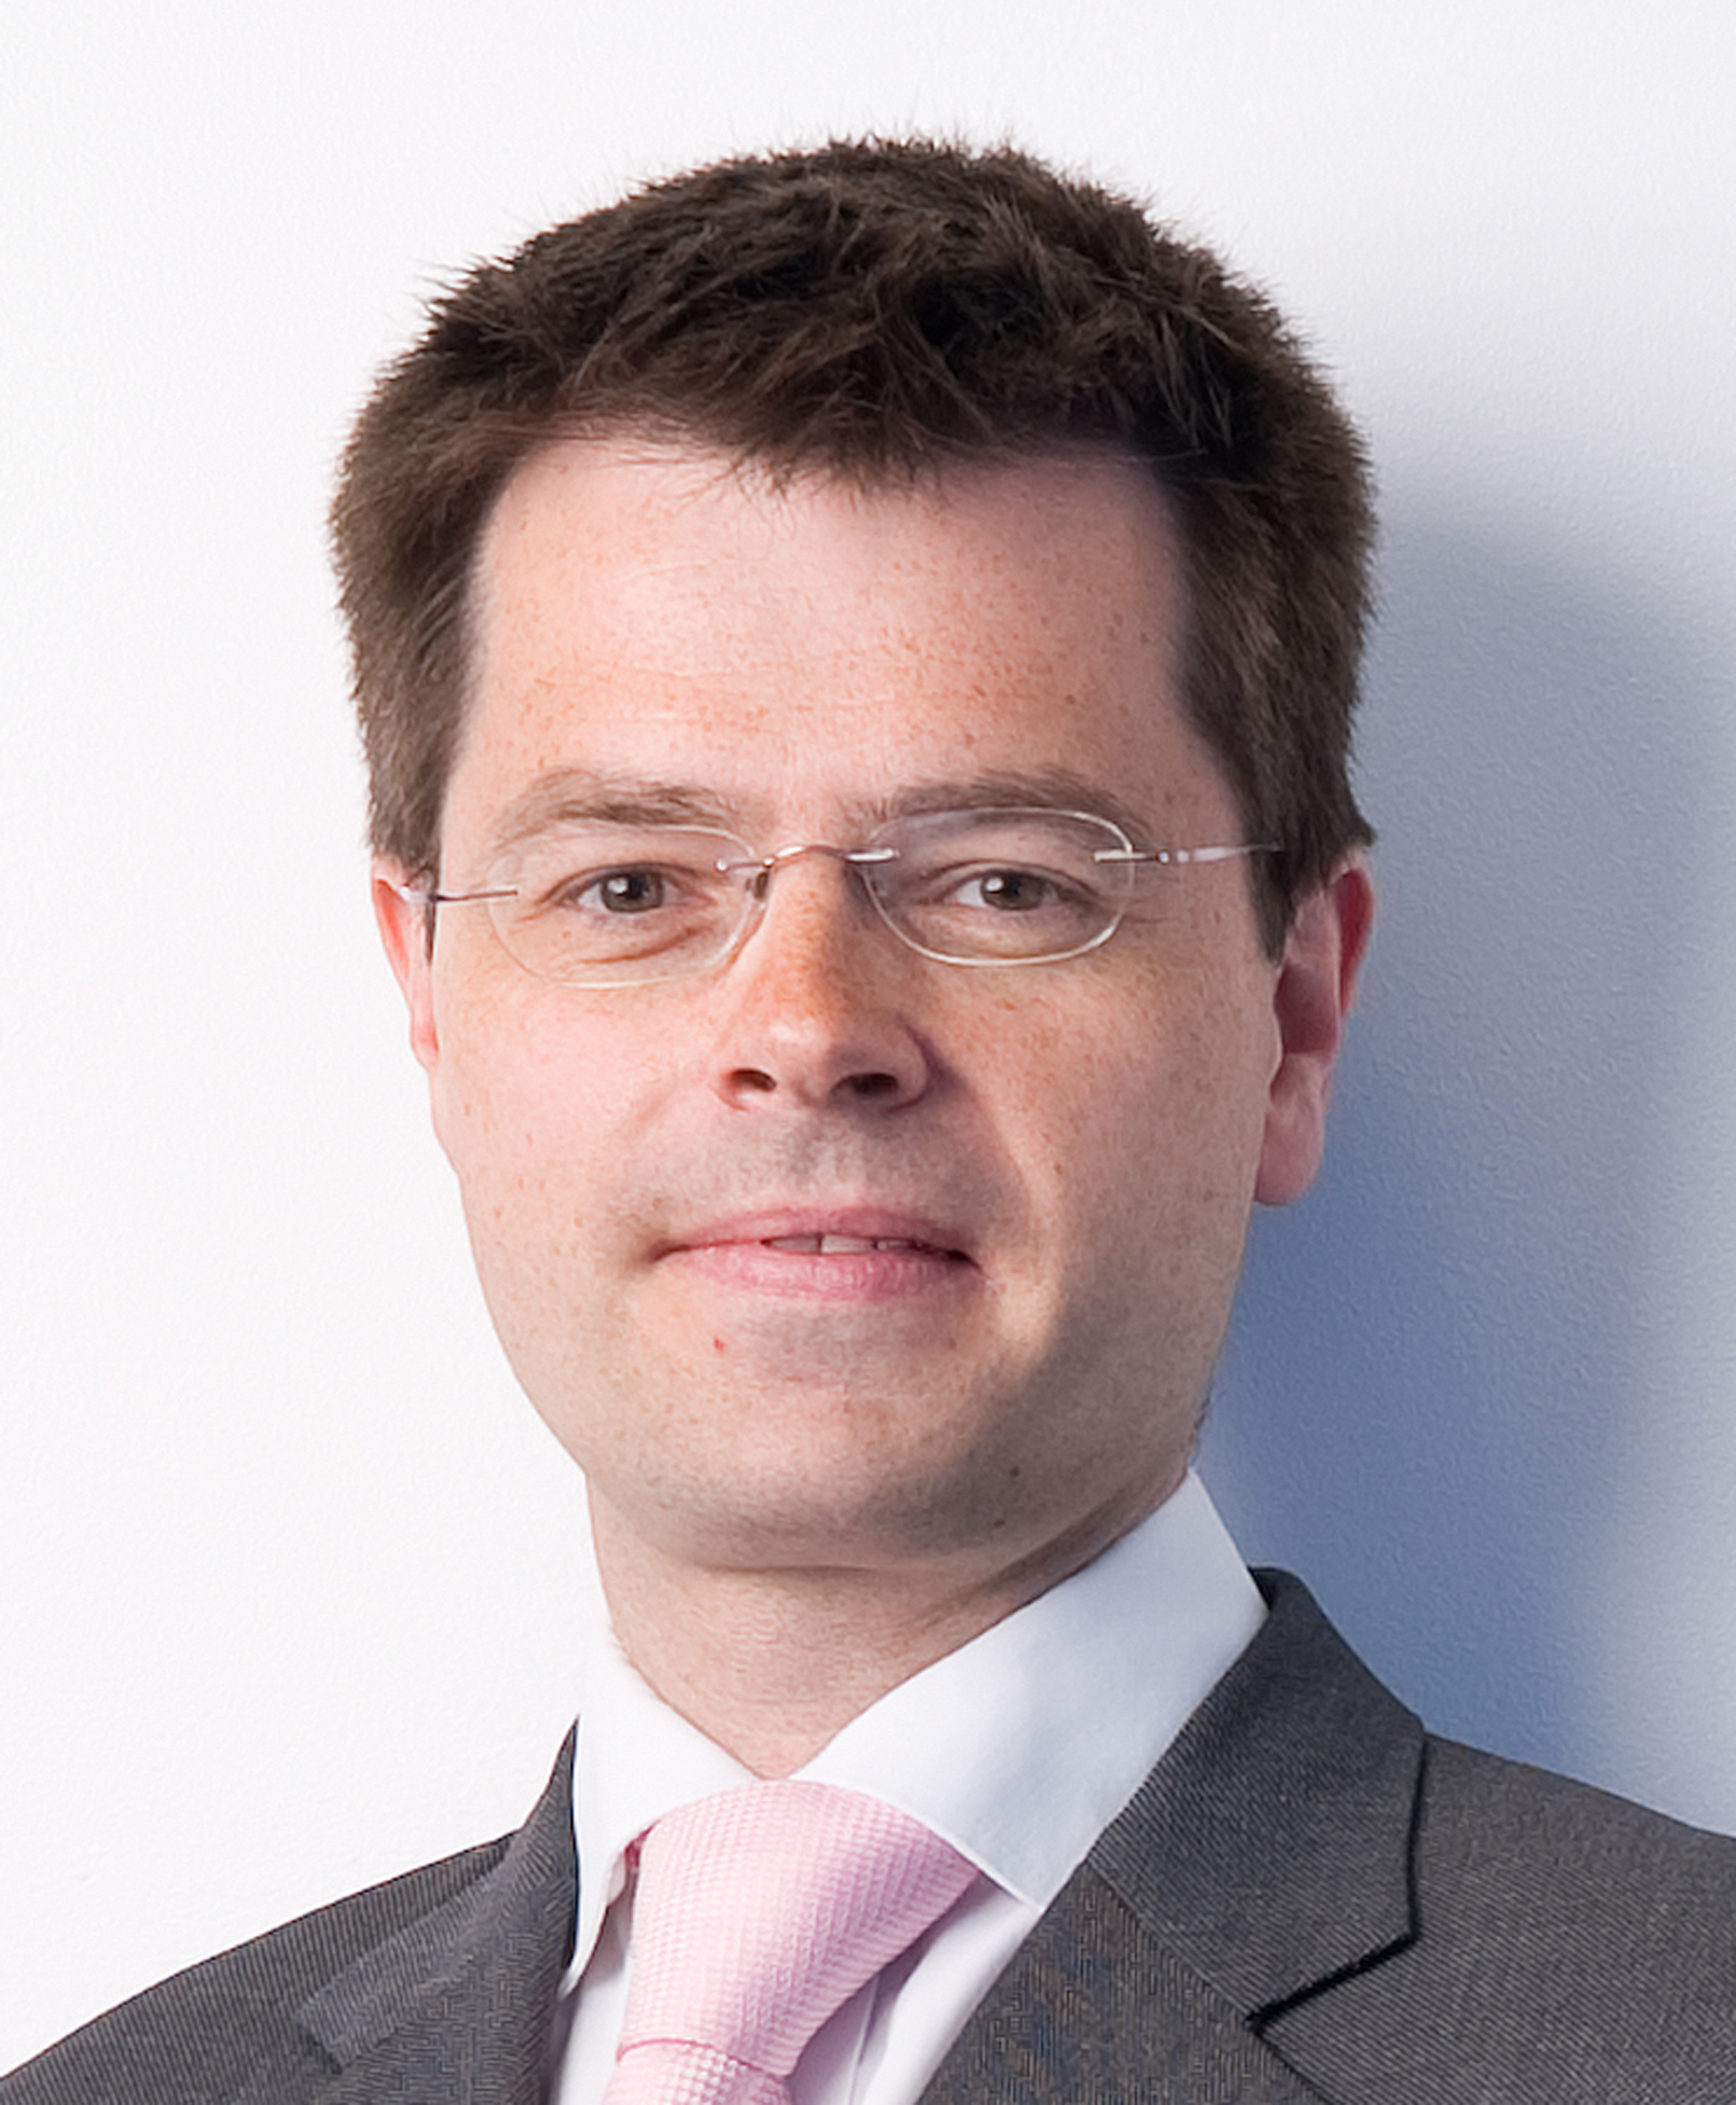 Charming James Brokenshire, The New Northern Ireland Secretary